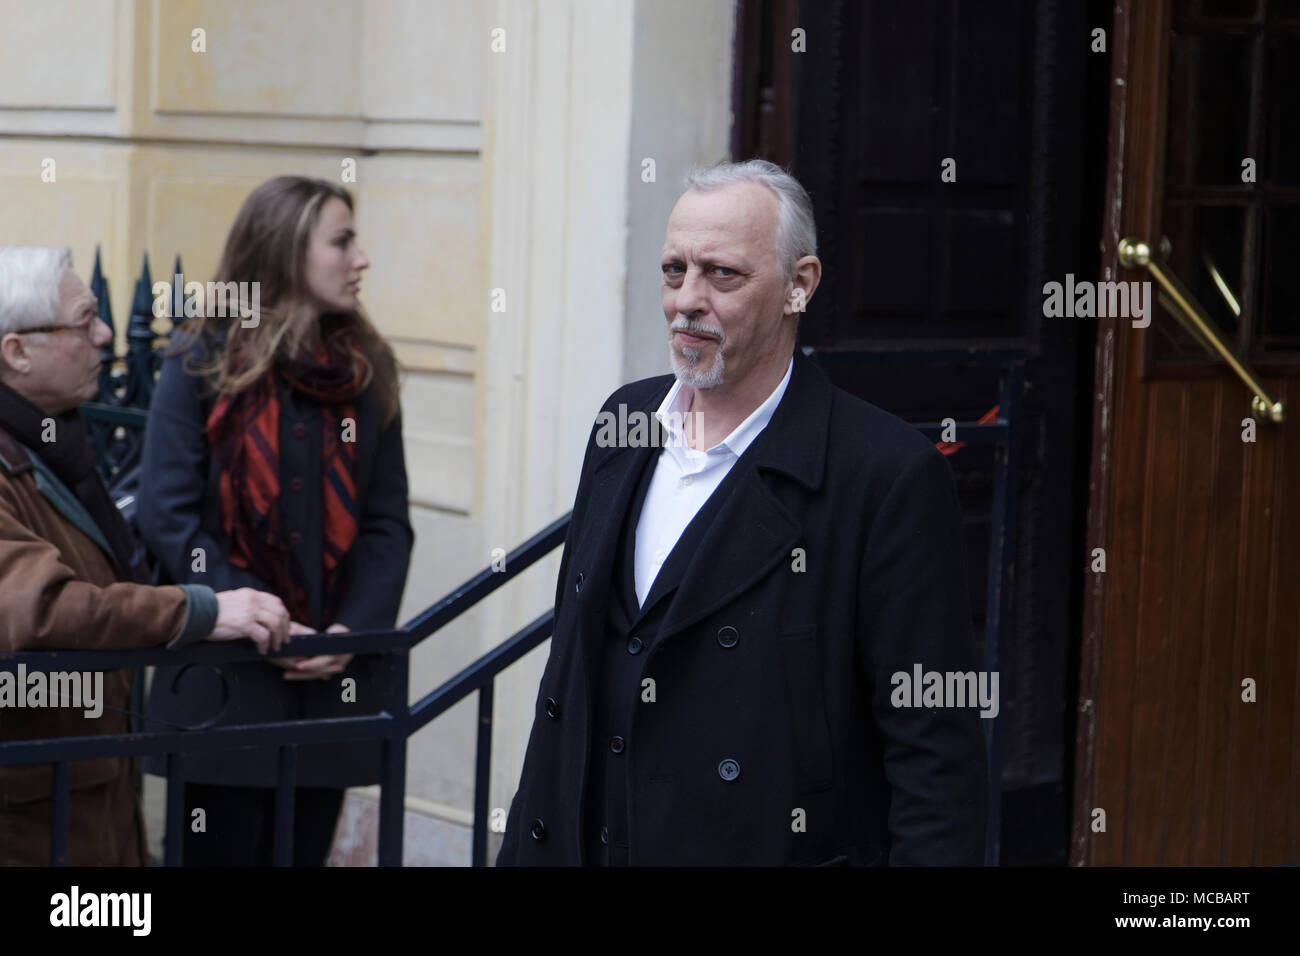 Paris, France. 12th Apr, 2018. Tom Novembre at the Jacques Higelin funeral at the Cirque d'Hiver on April 12, 2018 in Paris, France. - Stock Image